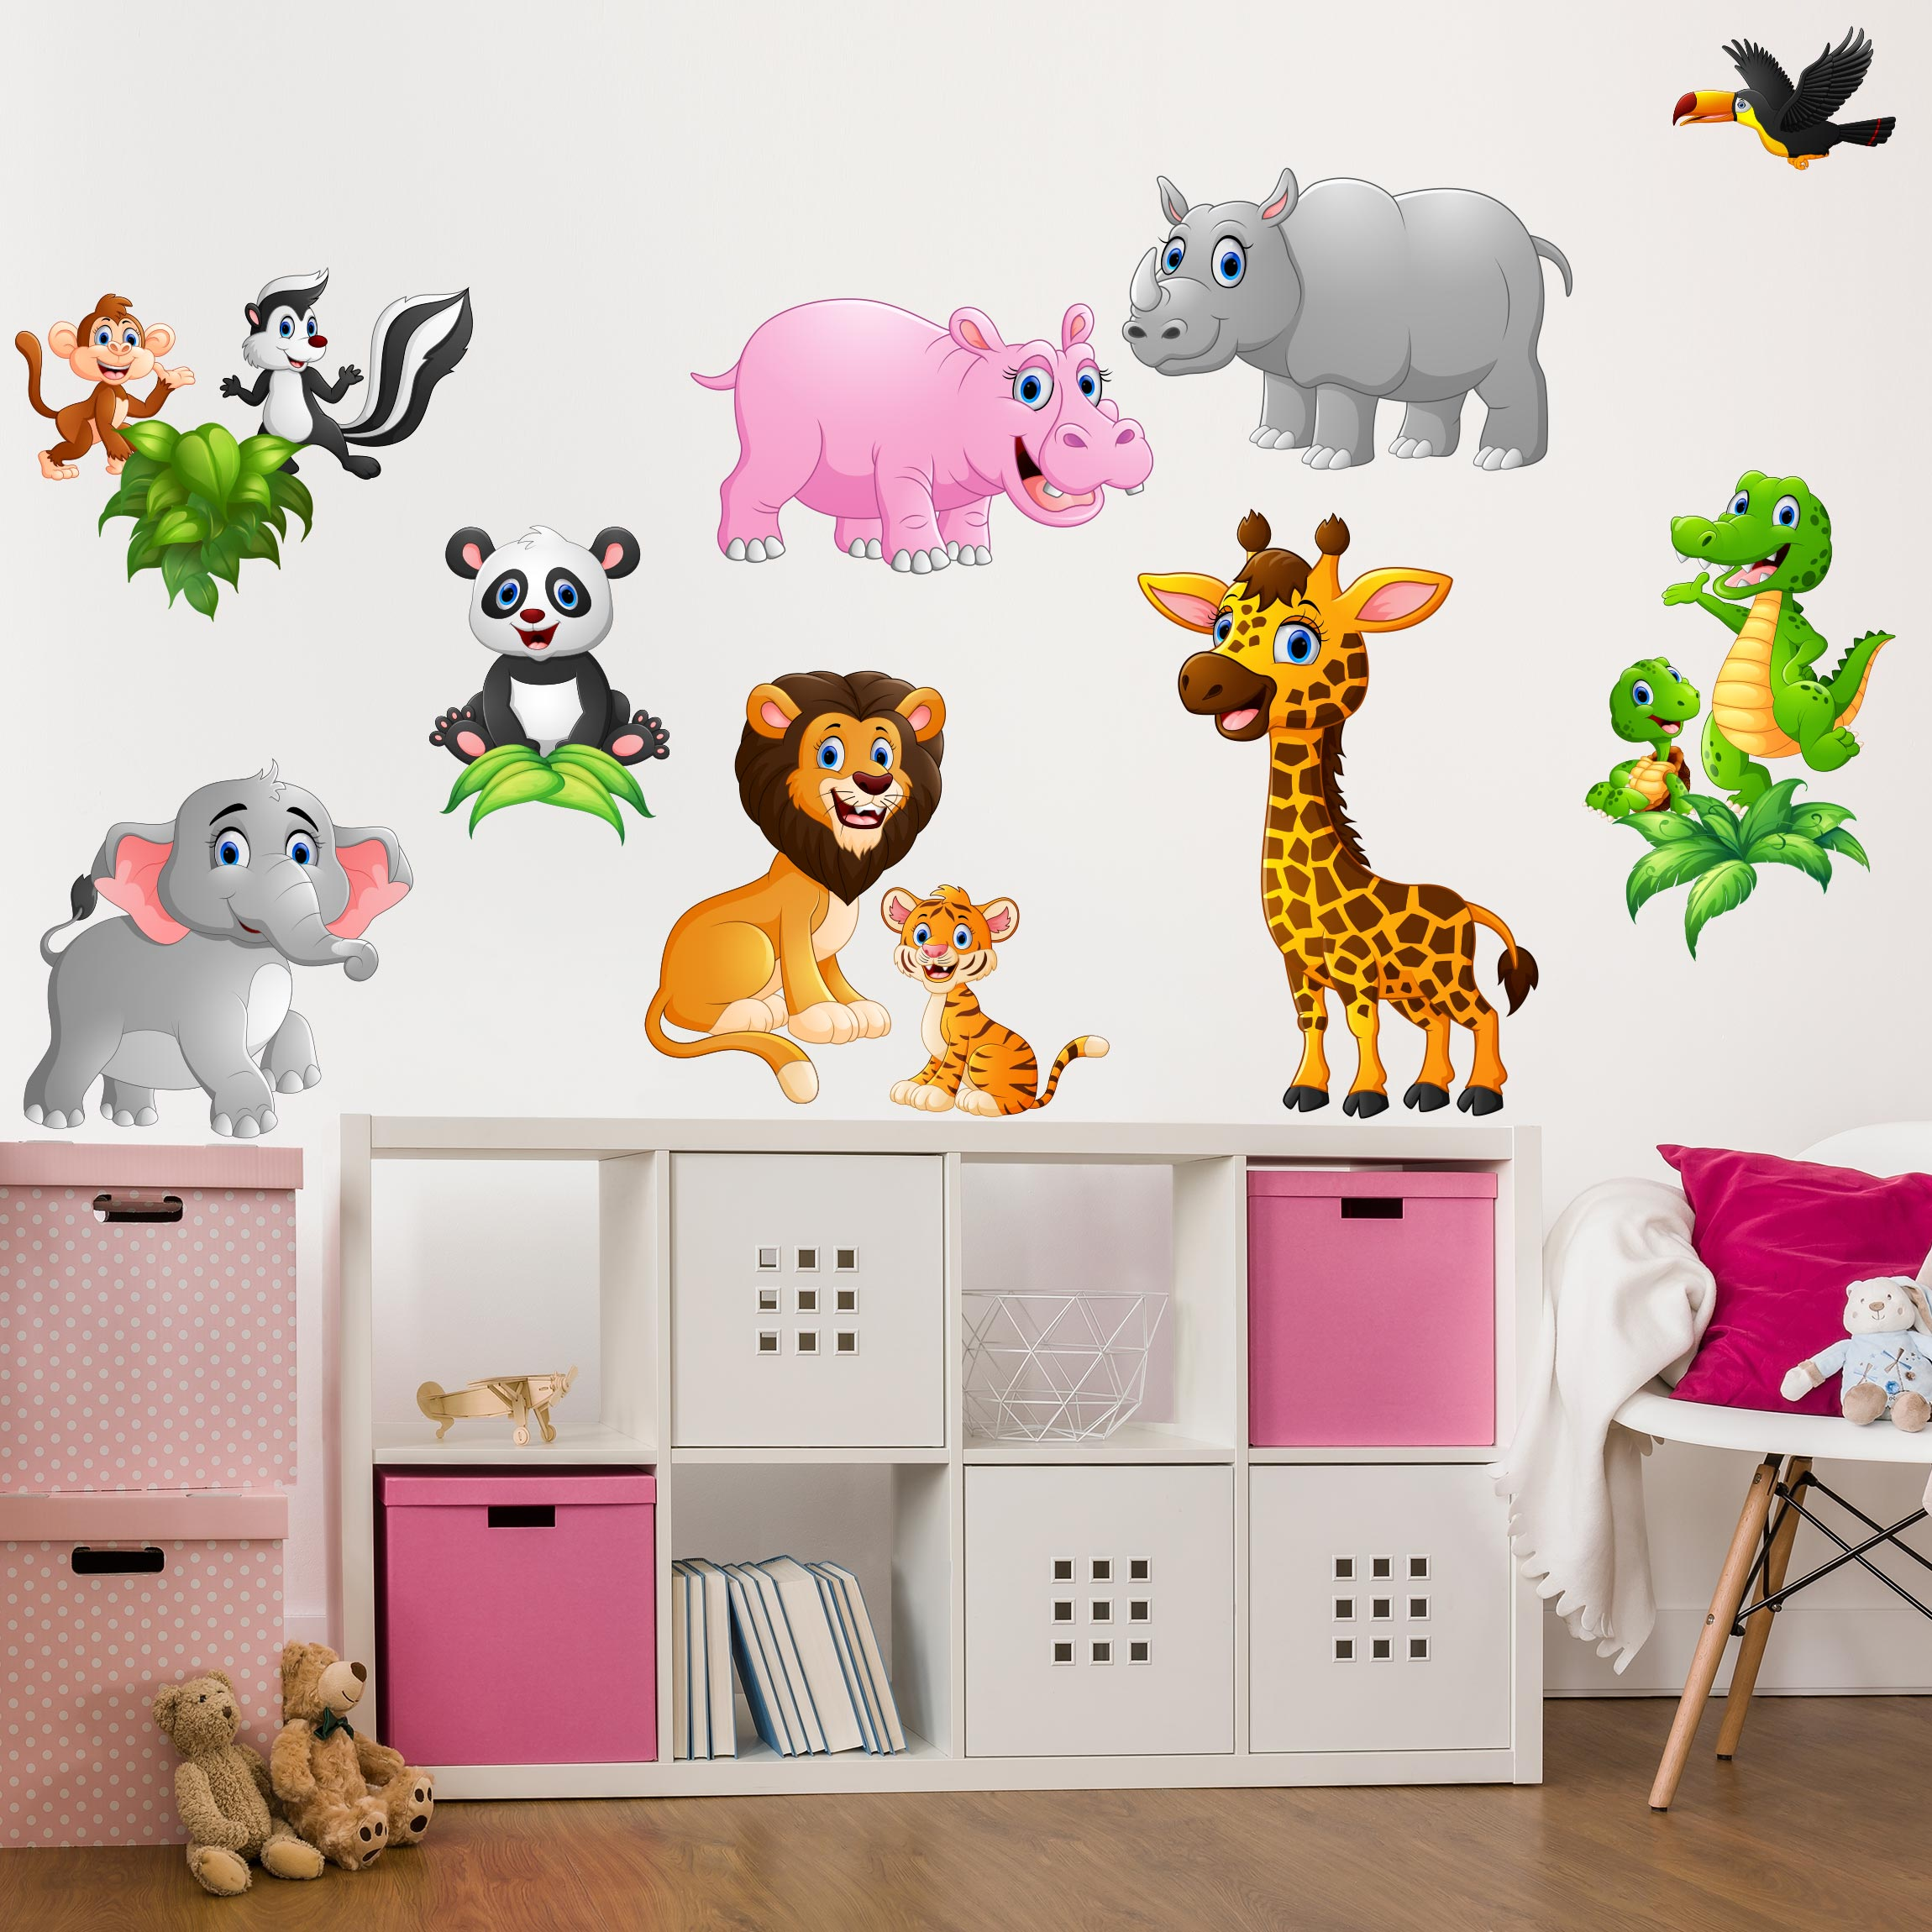 wandtattoo kinderzimmer tiere des dschungels. Black Bedroom Furniture Sets. Home Design Ideas